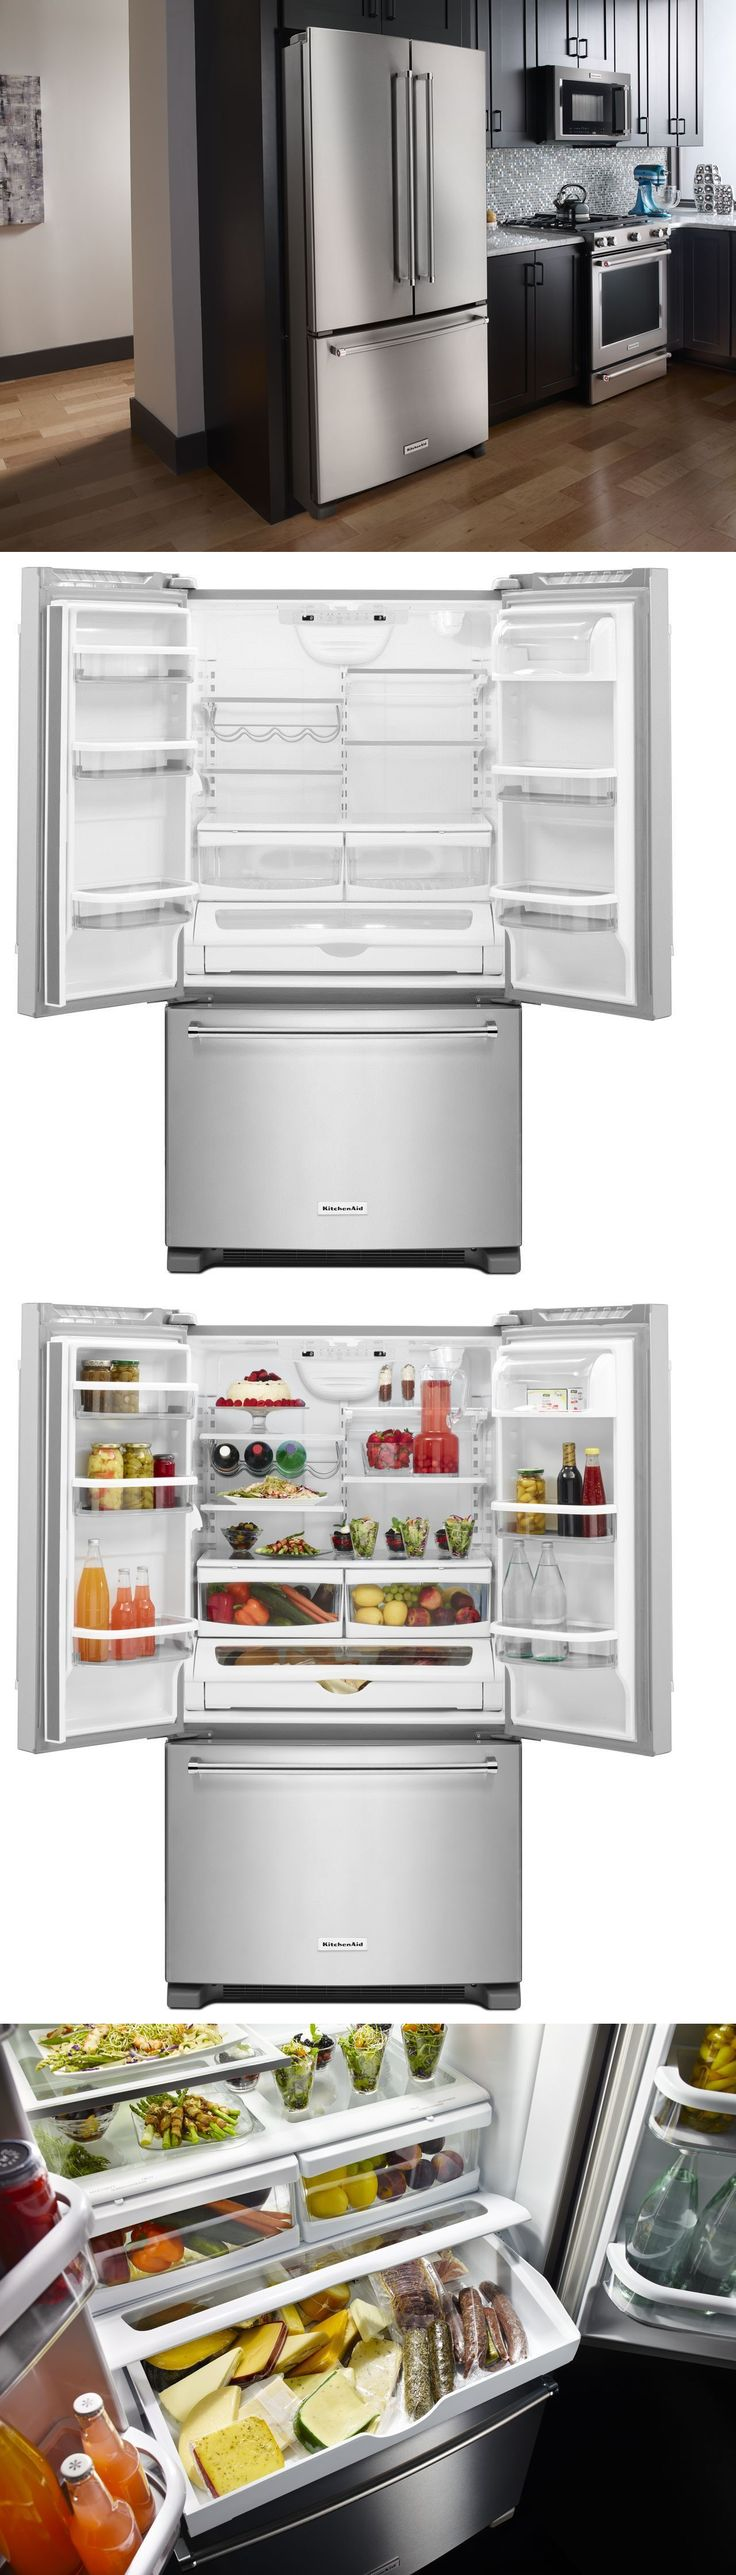 Refrigerators 20713: Kitchenaid Krff305ess 36 French Door Refrigerator Interior Dispenser Stainless -> BUY IT NOW ONLY: $1399 on eBay!